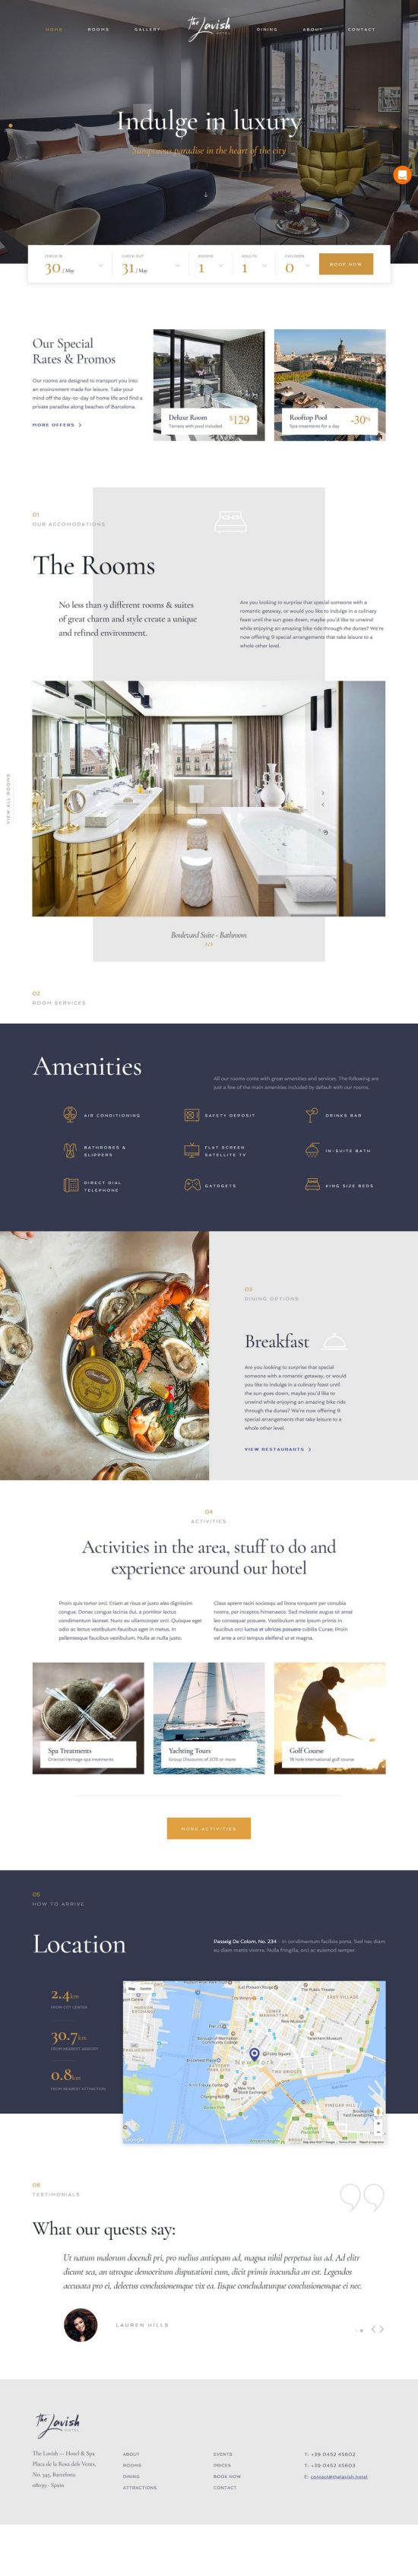 themefuse haven wordpress theme 01 - Haven WordPress Theme